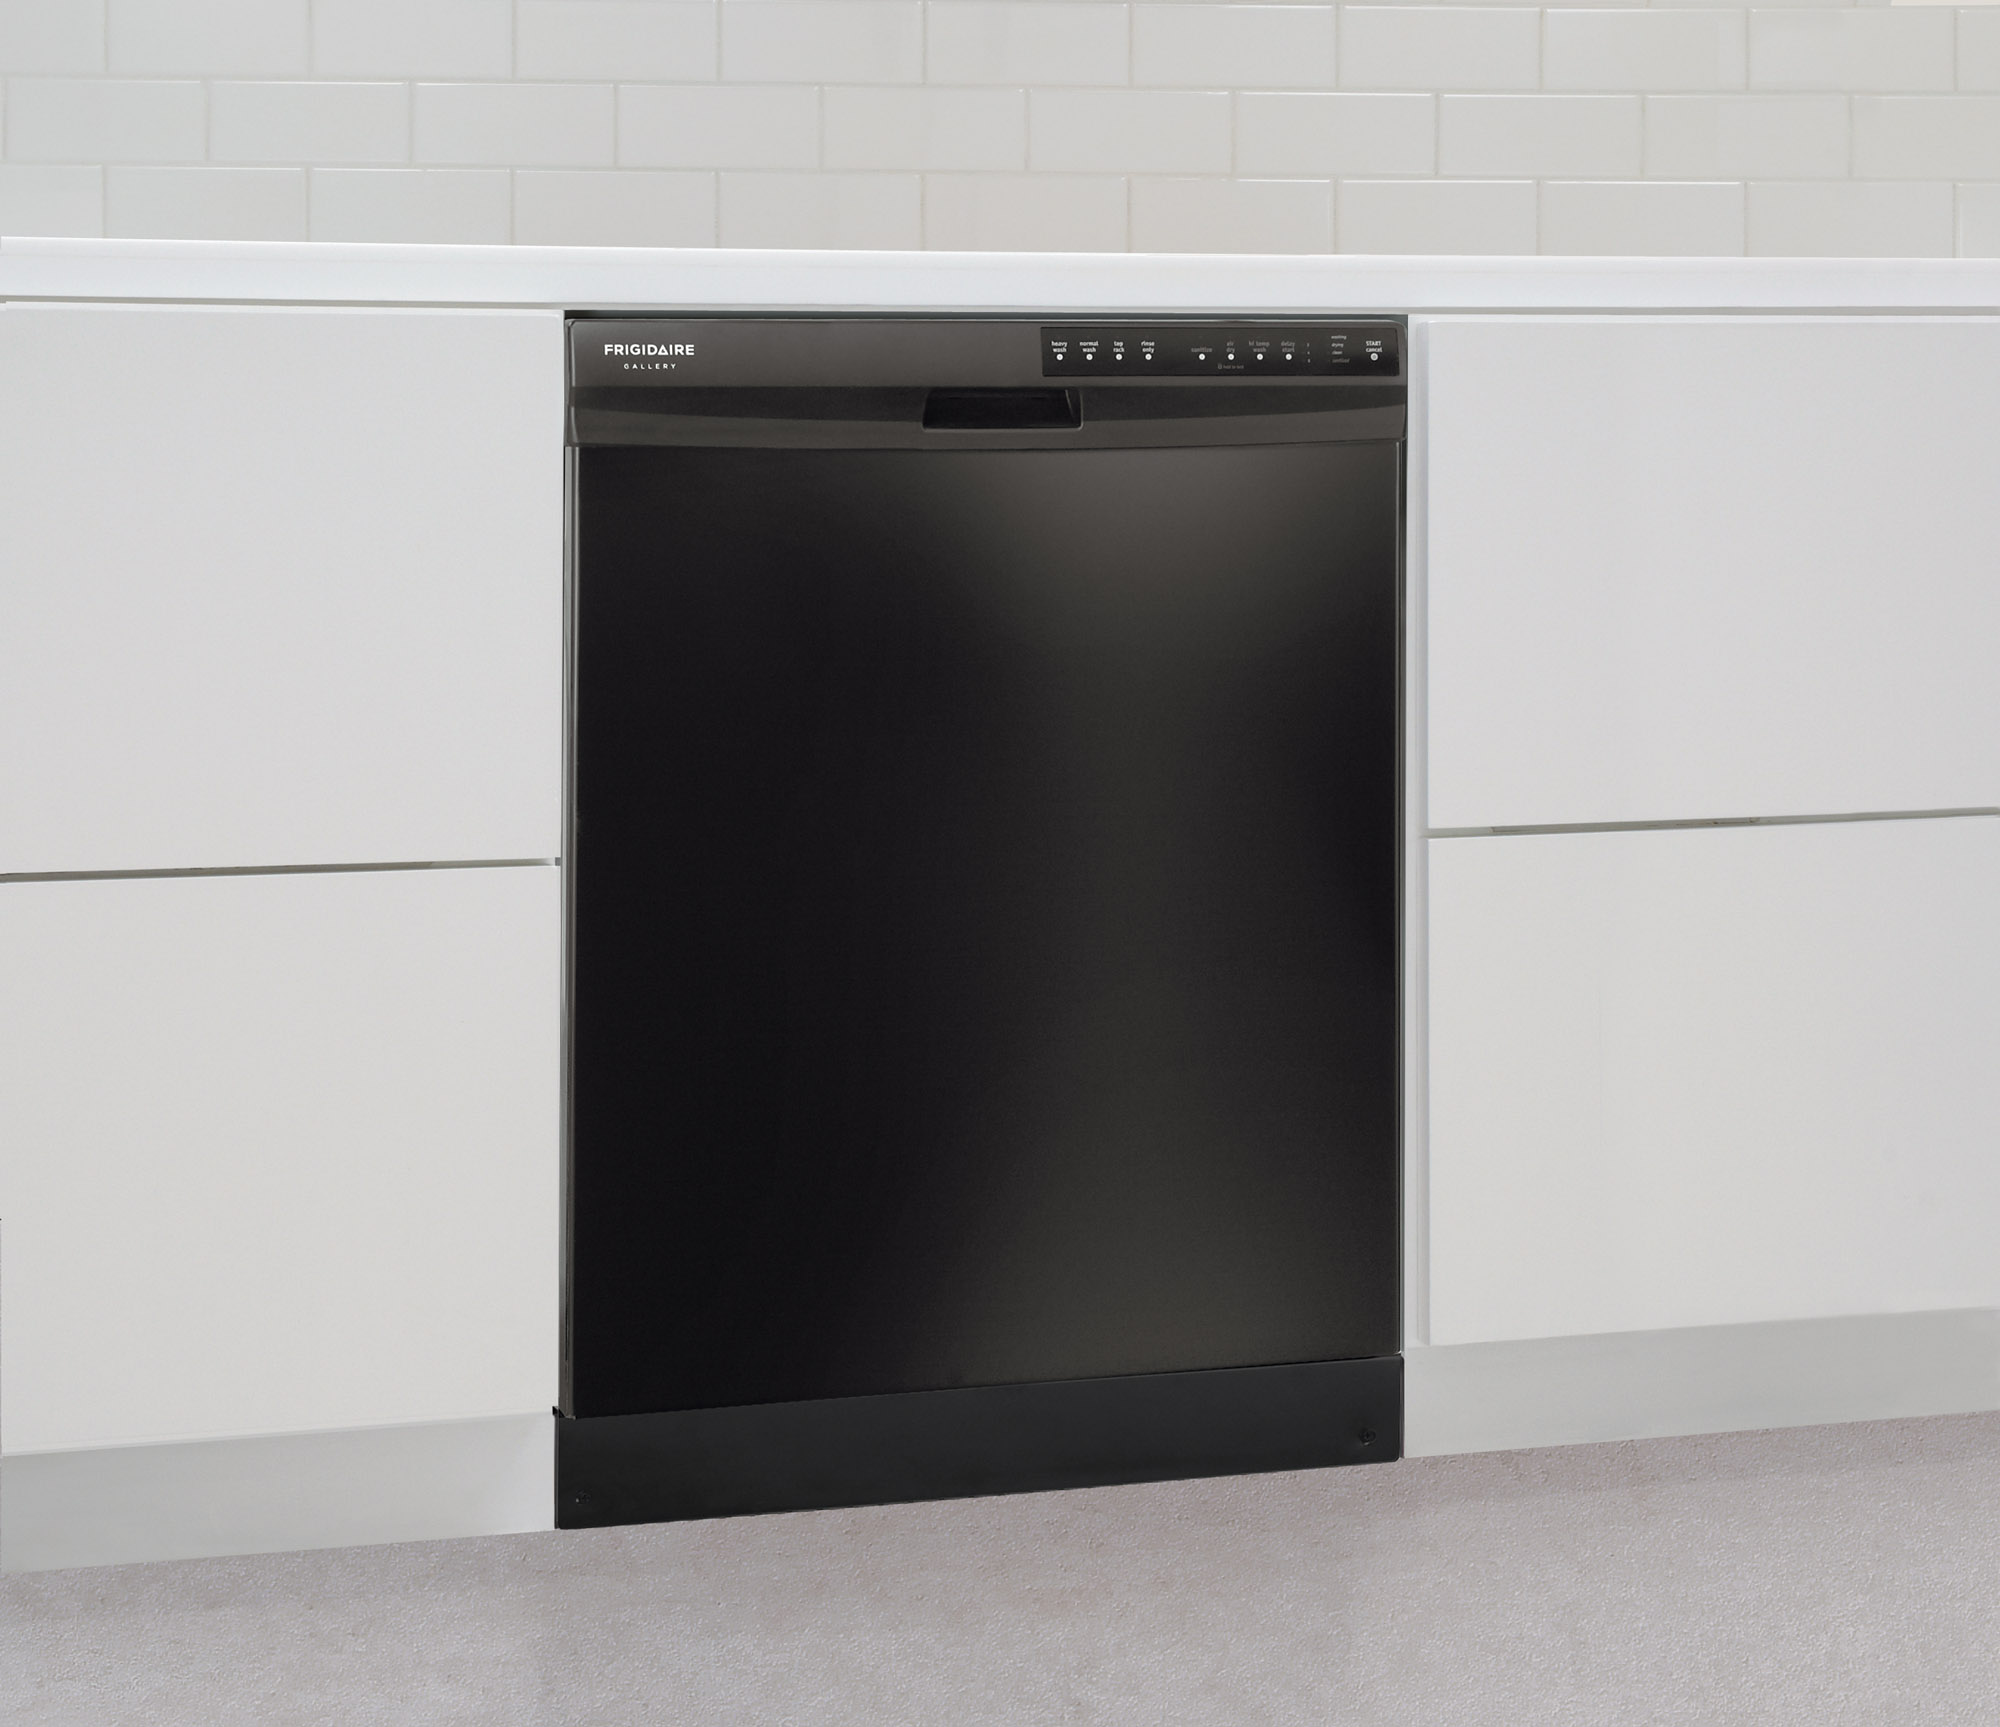 "Frigidaire Gallery FGBD2434PB Gallery 24"" Built-In Dishwasher w/ Nylon Racks - Black"